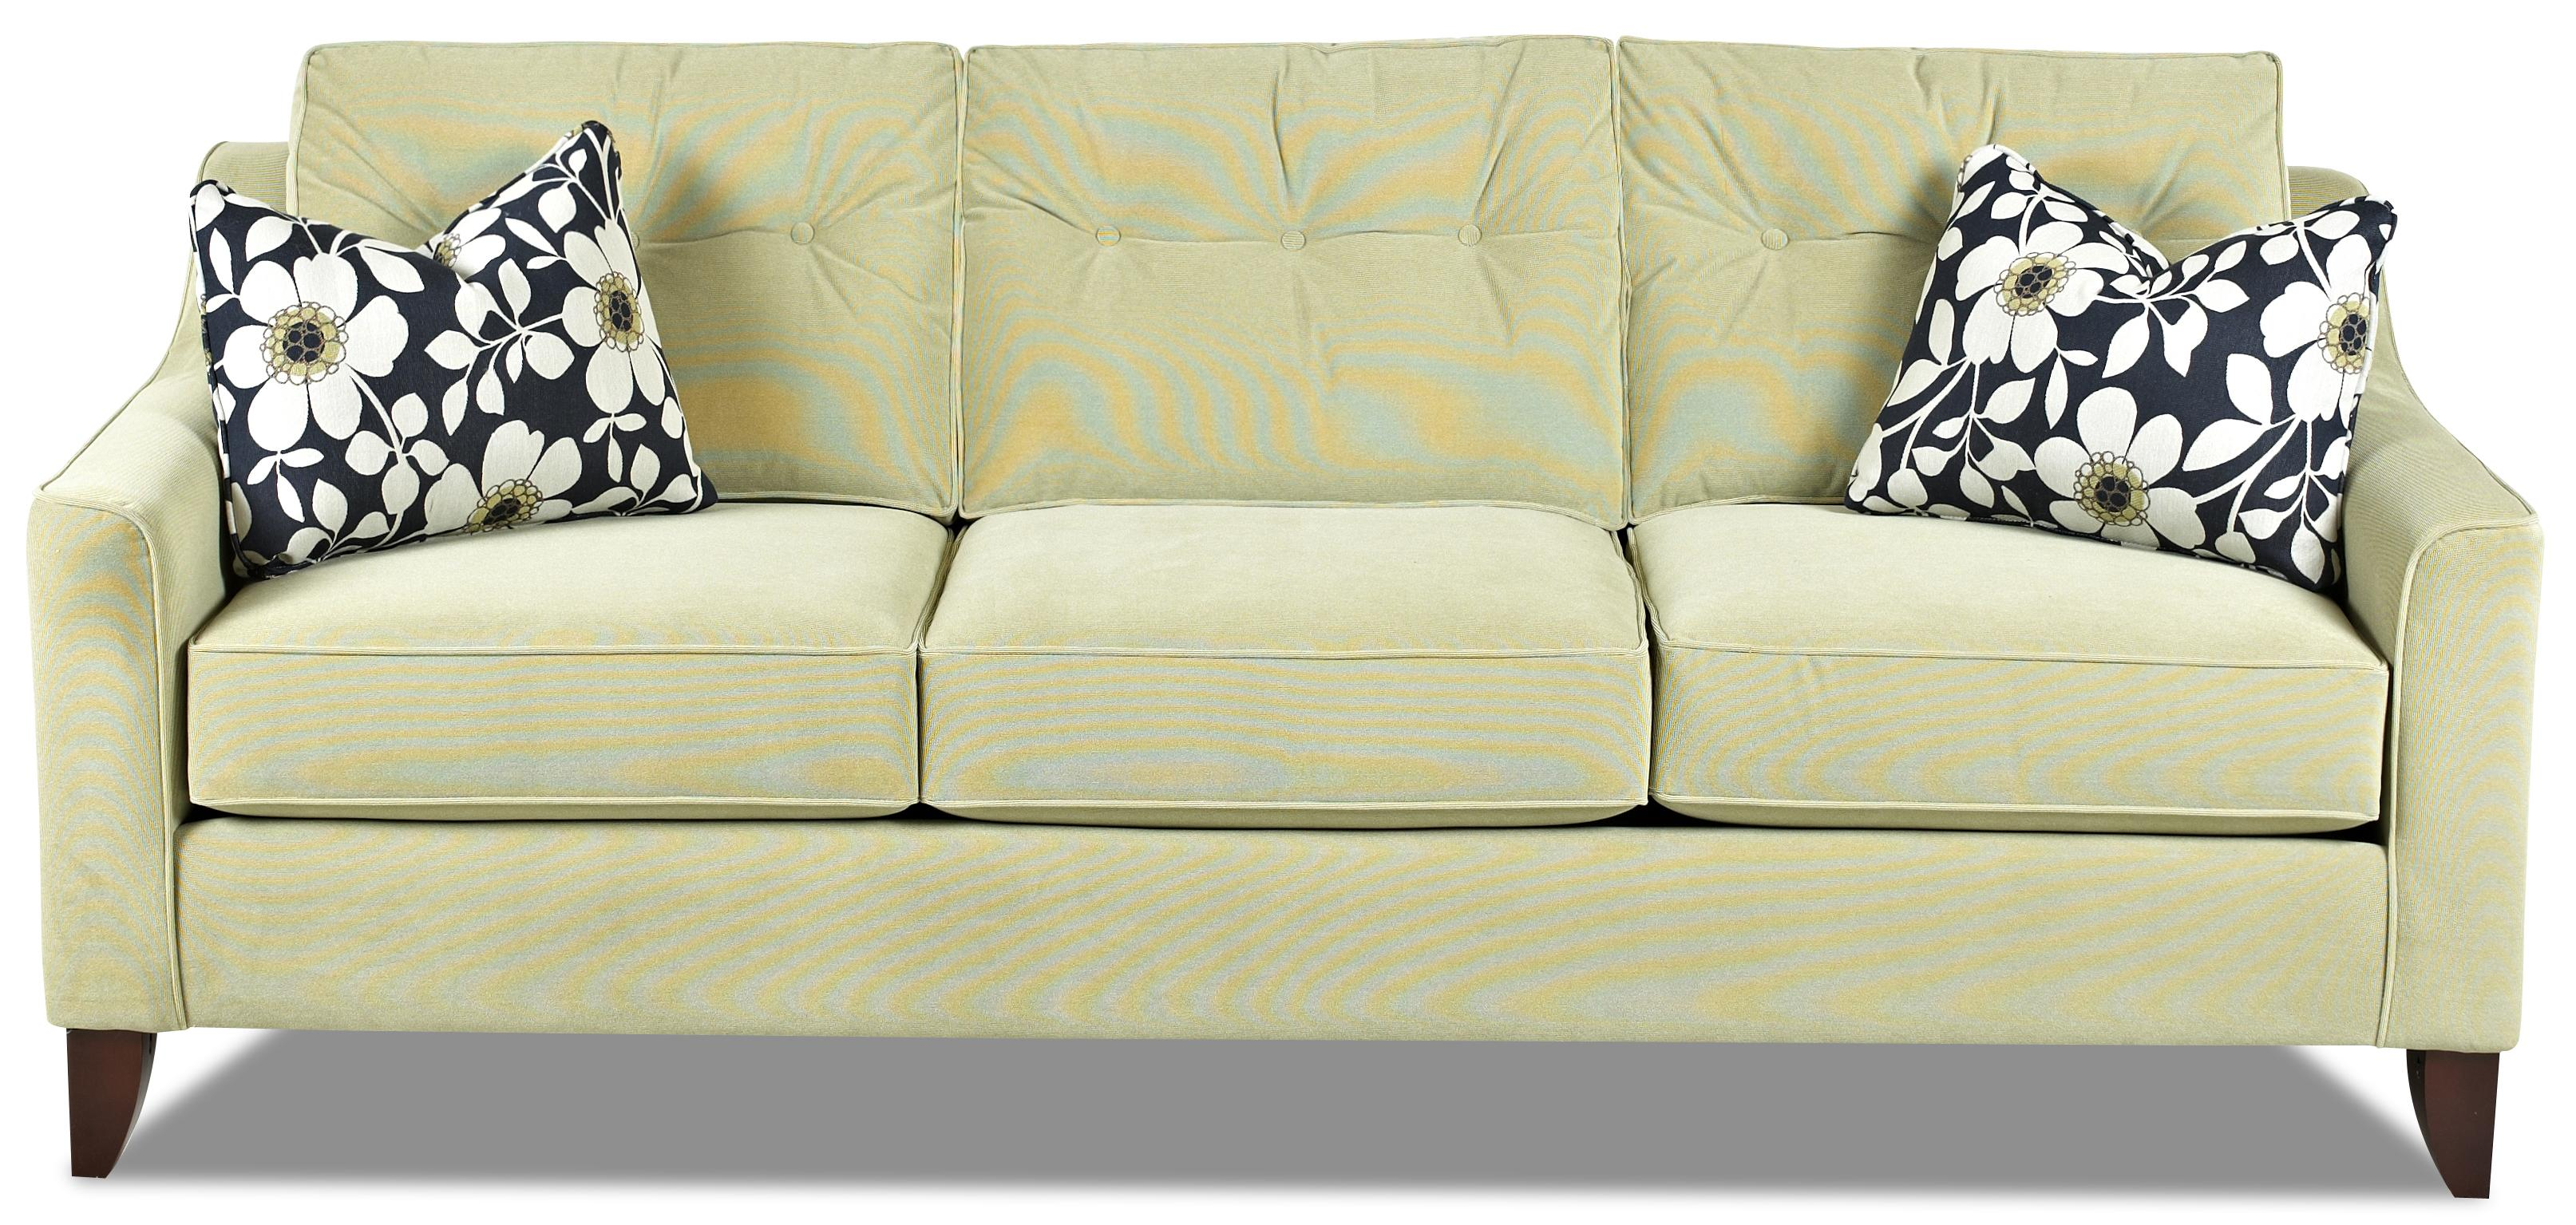 mid-century modern style sofa with tufted cushionsklaussner